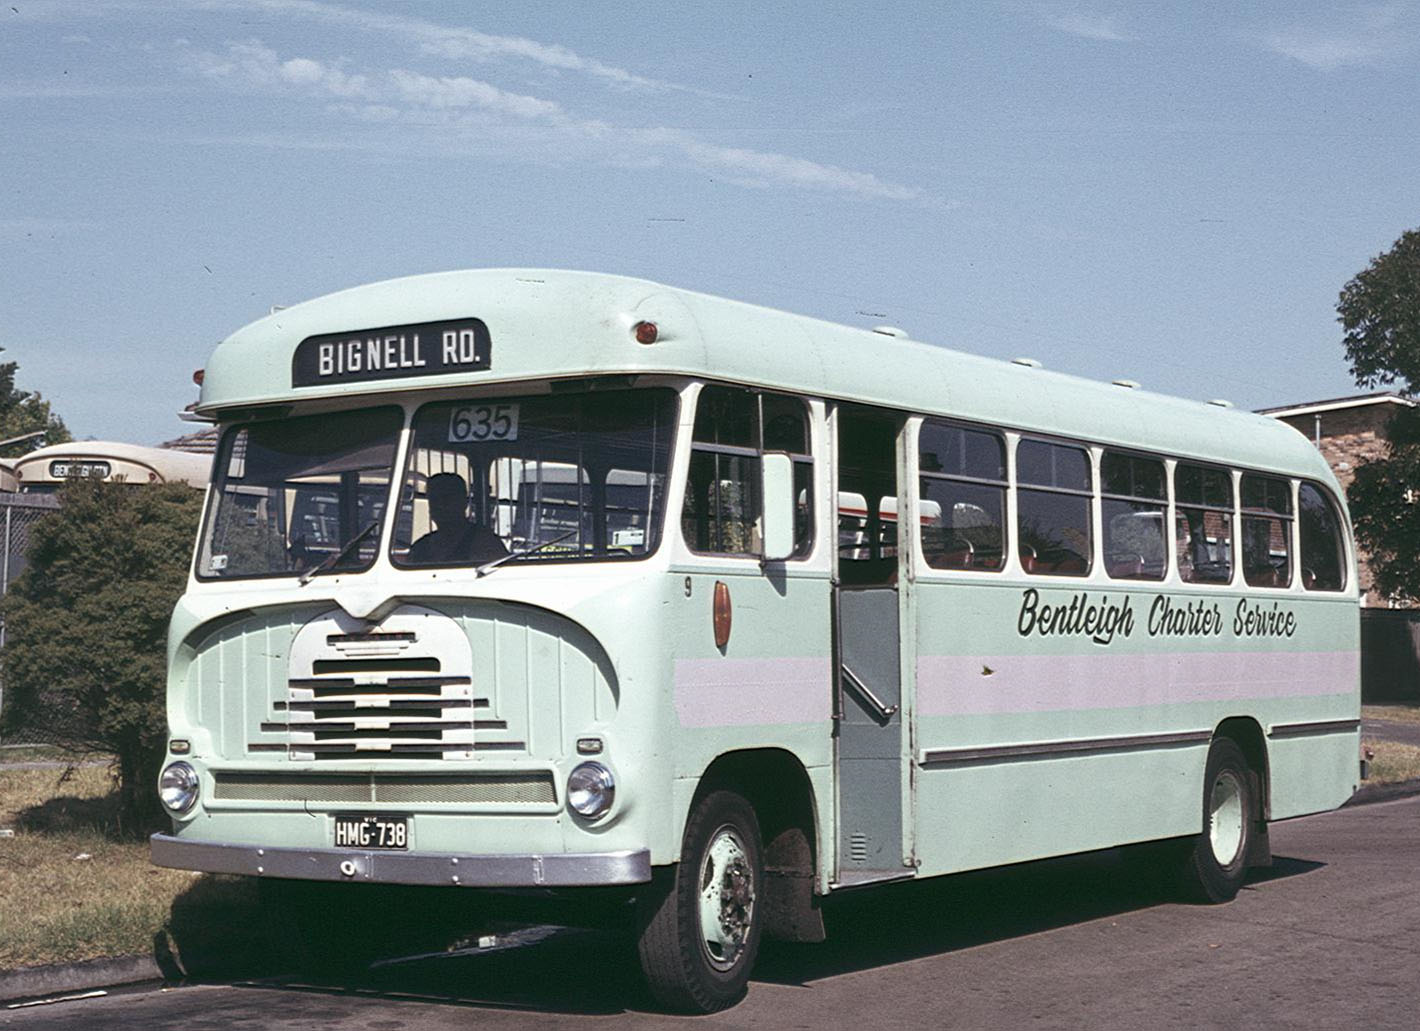 HMG 738 a 1961 Bedford SB3/ Comair was one of the regular buses on the Bentleigh to South Bentleigh run for many years and shows the green and mauve livery. (Bruce Tilley)